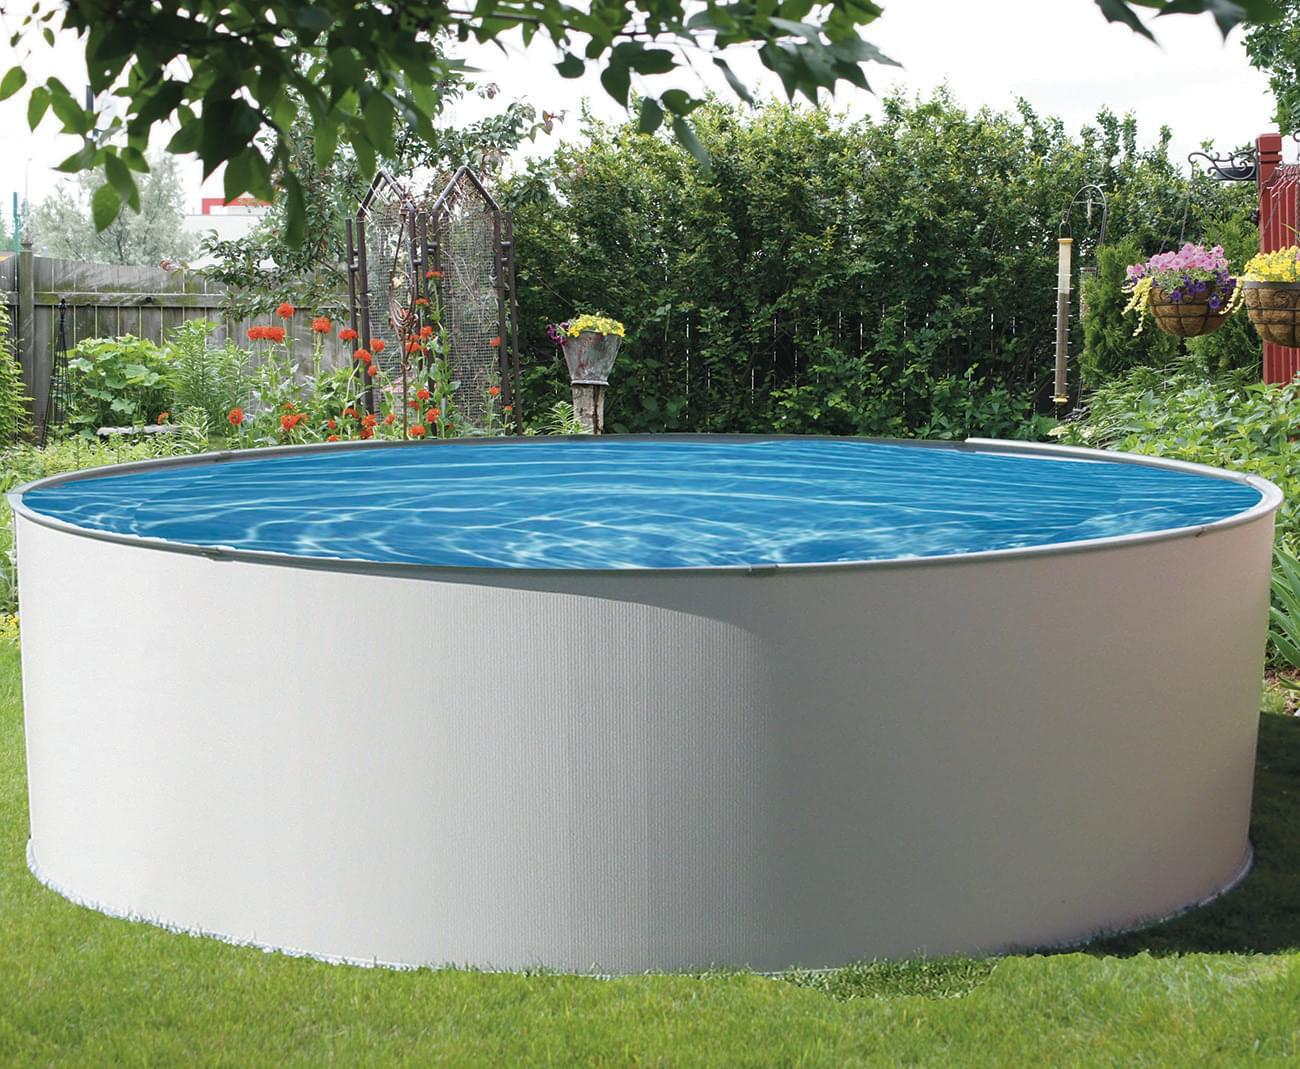 Simplicity 12 round above ground pool pool supplies canada for Round swimming pools above ground